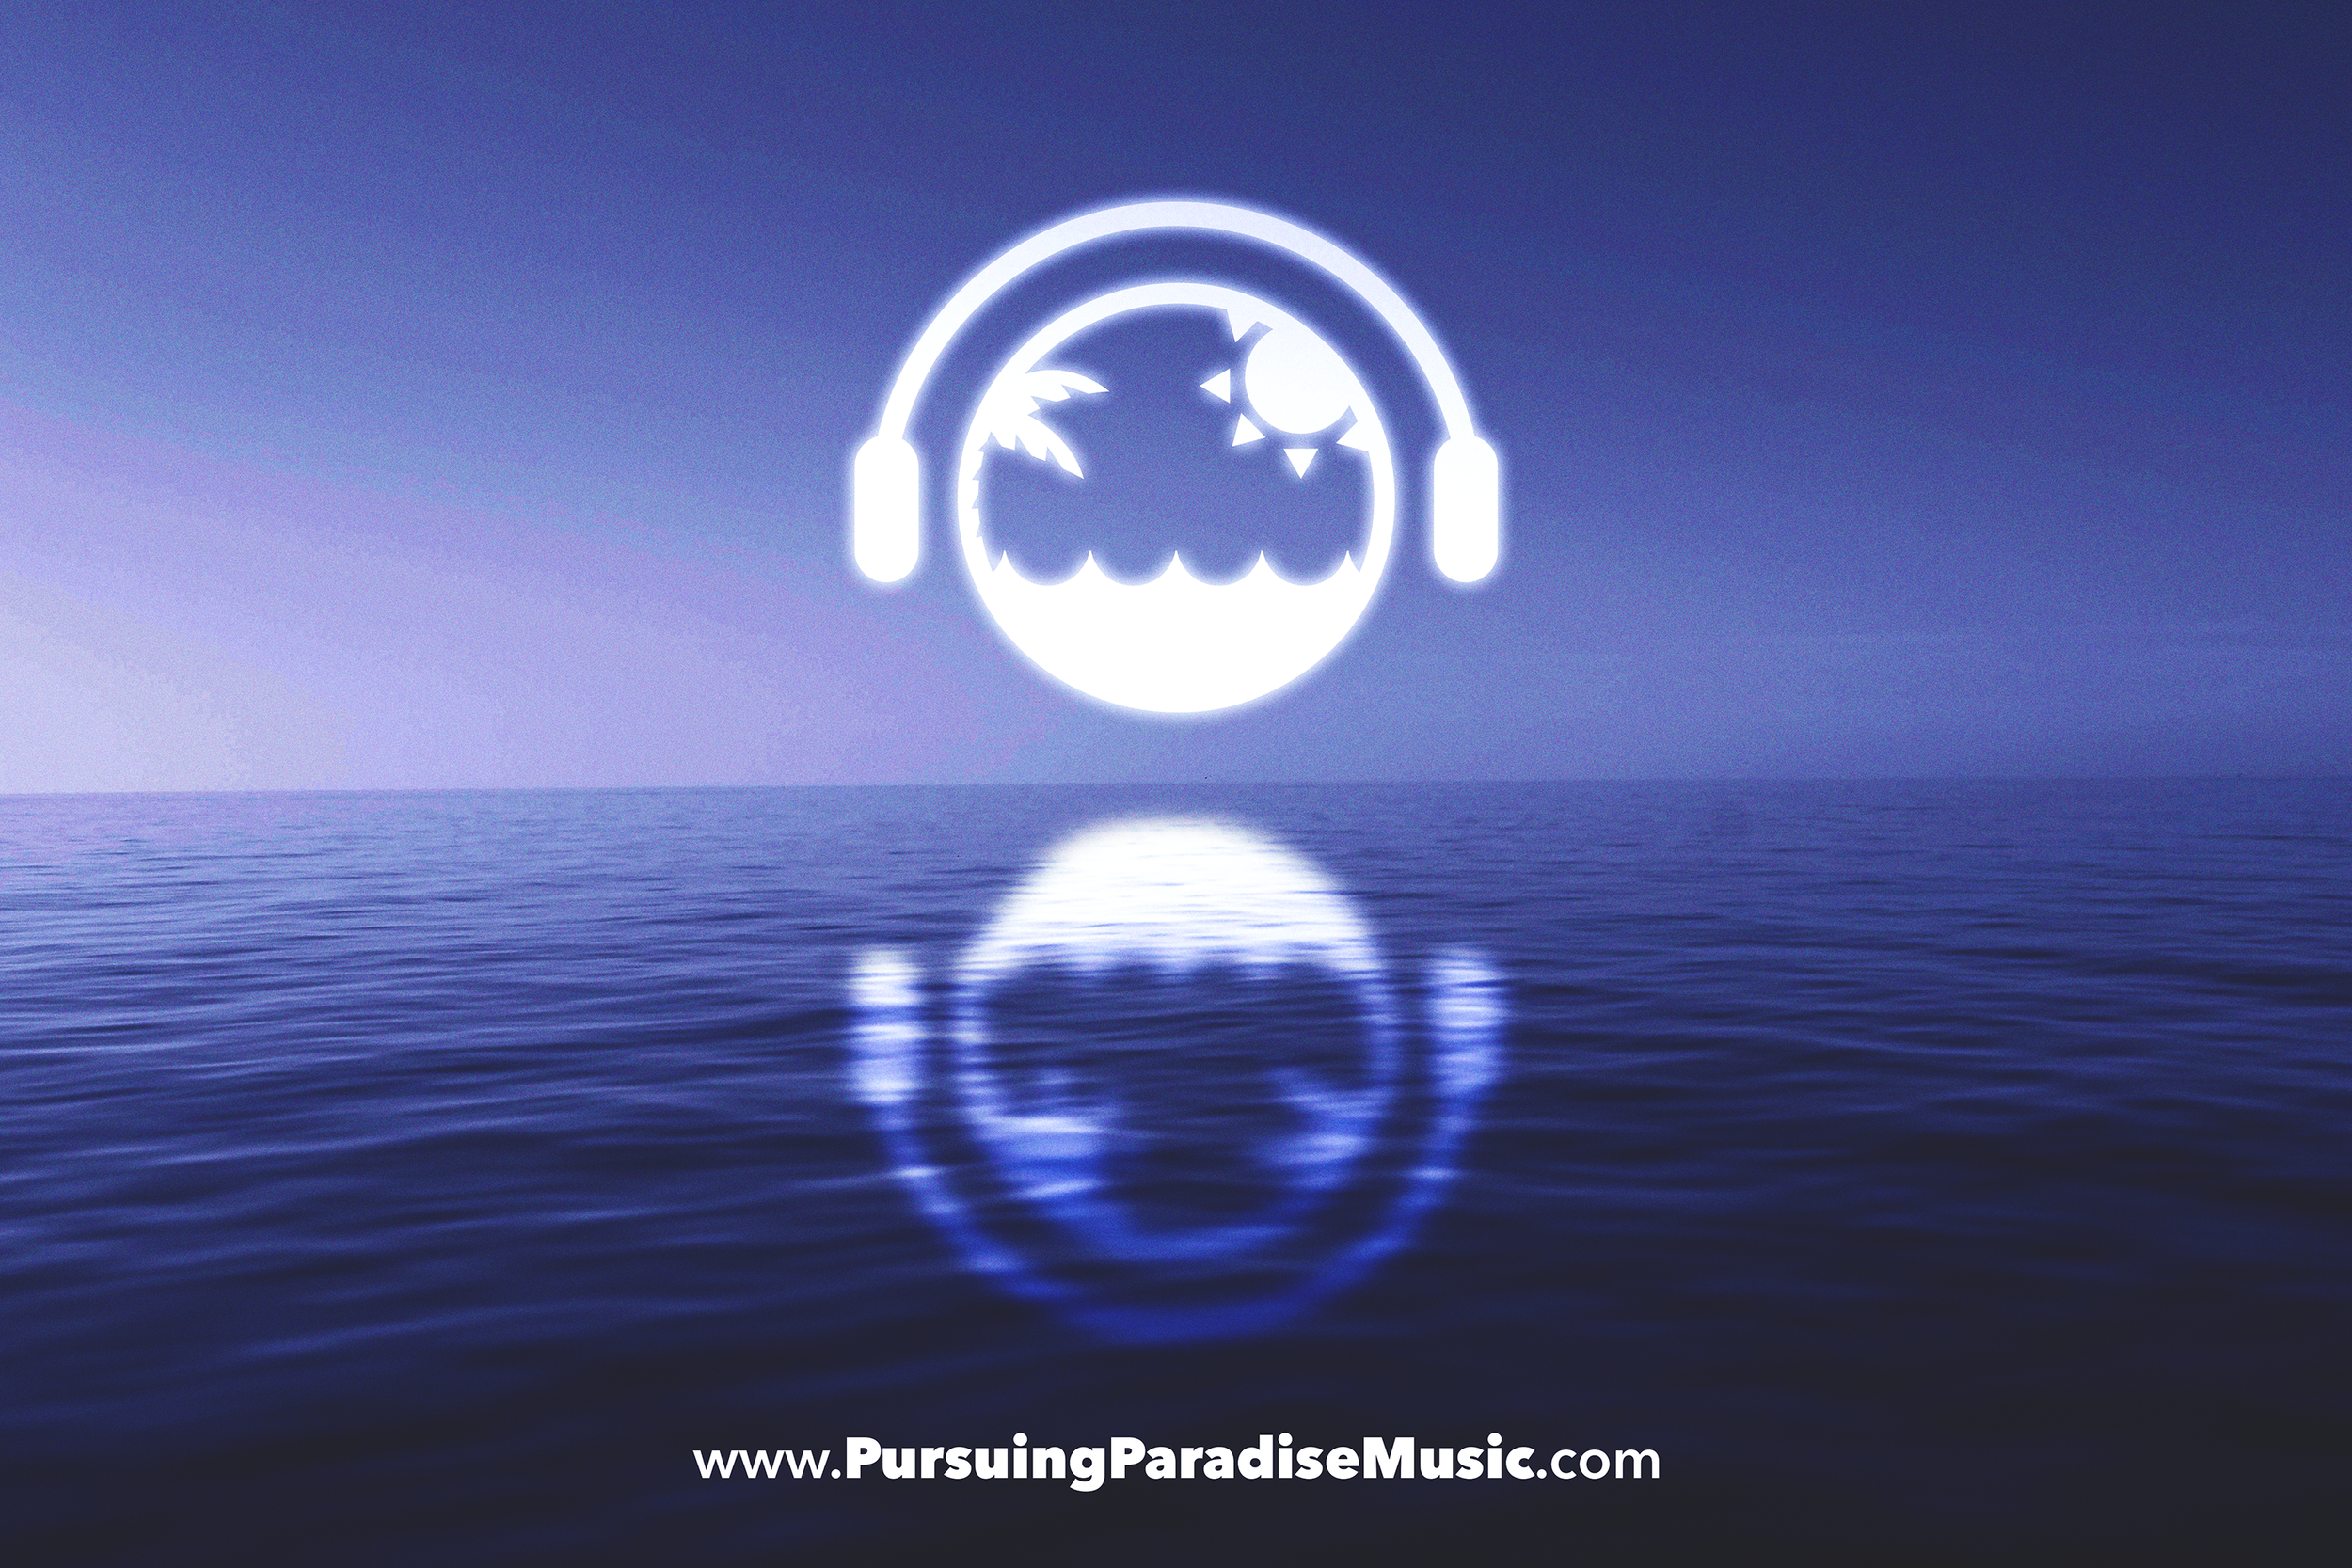 Paradise Music Promo.png